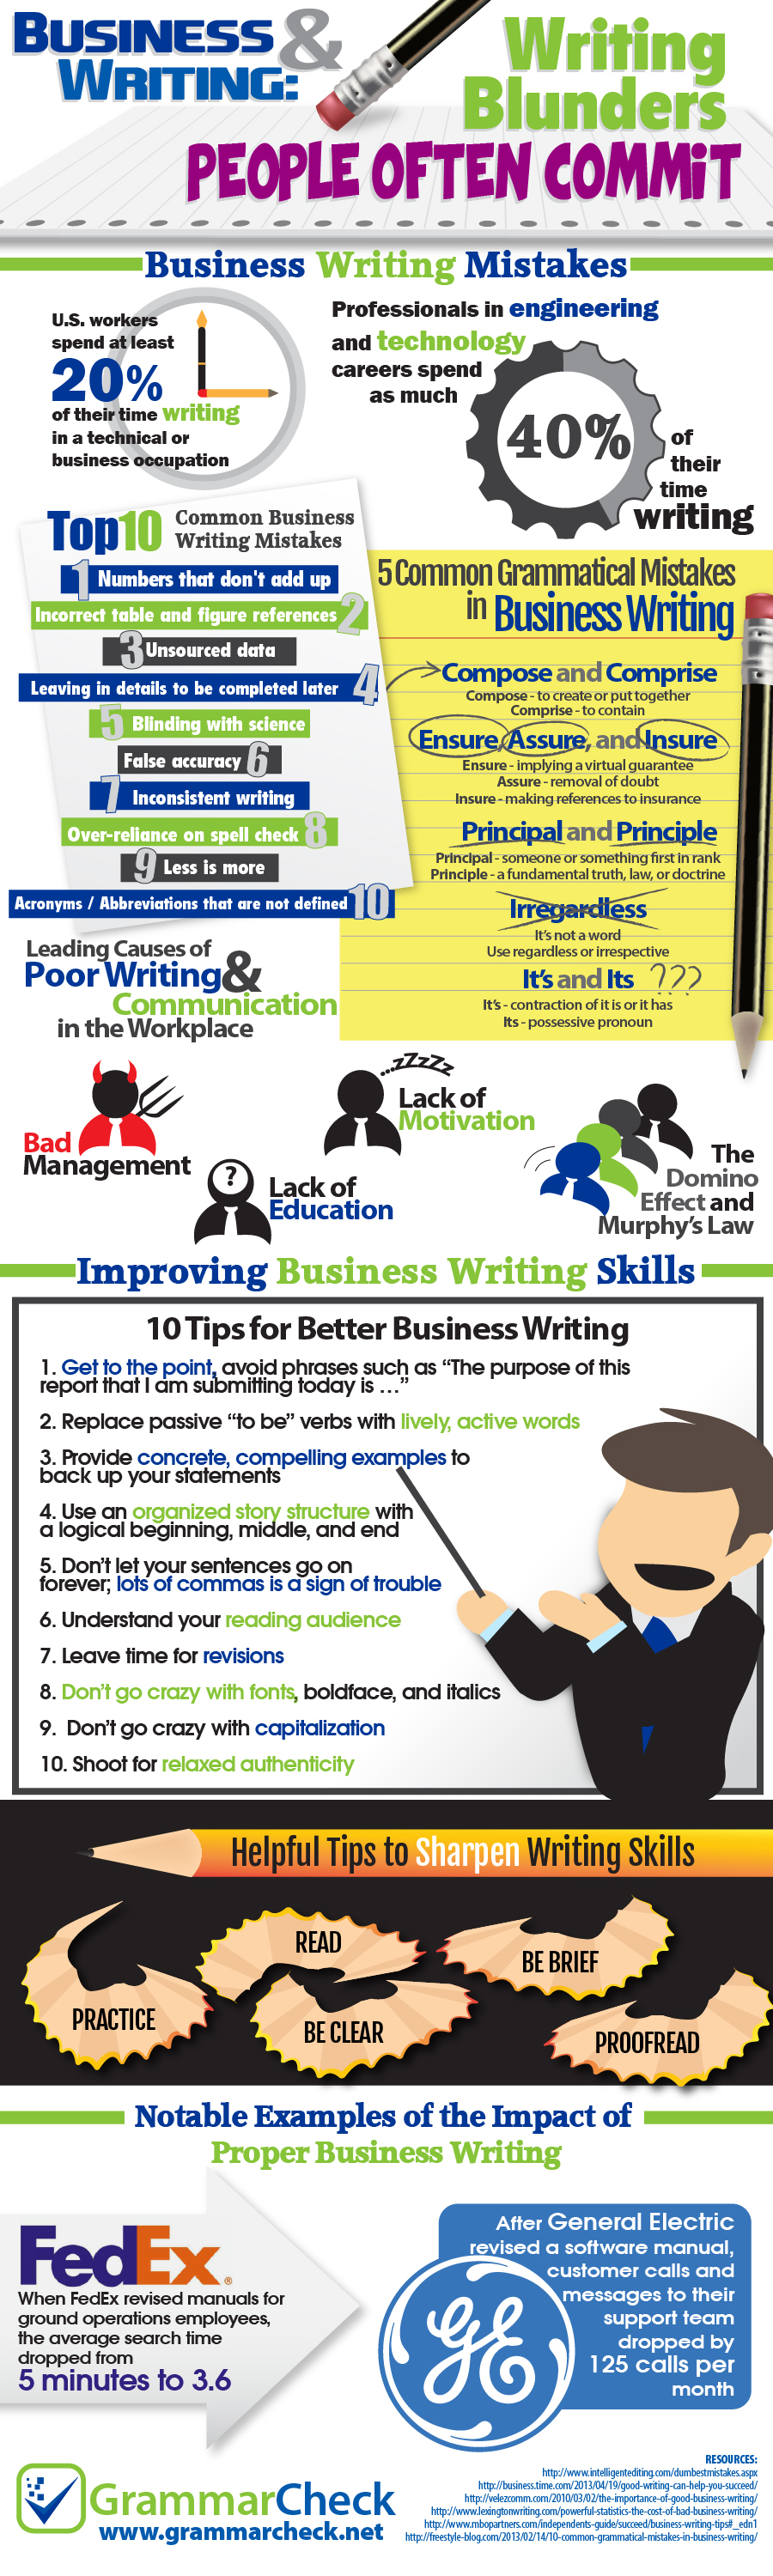 top common business writing blunders everyday grammatical top 10 common business writing blunders 5 everyday grammatical mistakes infographic